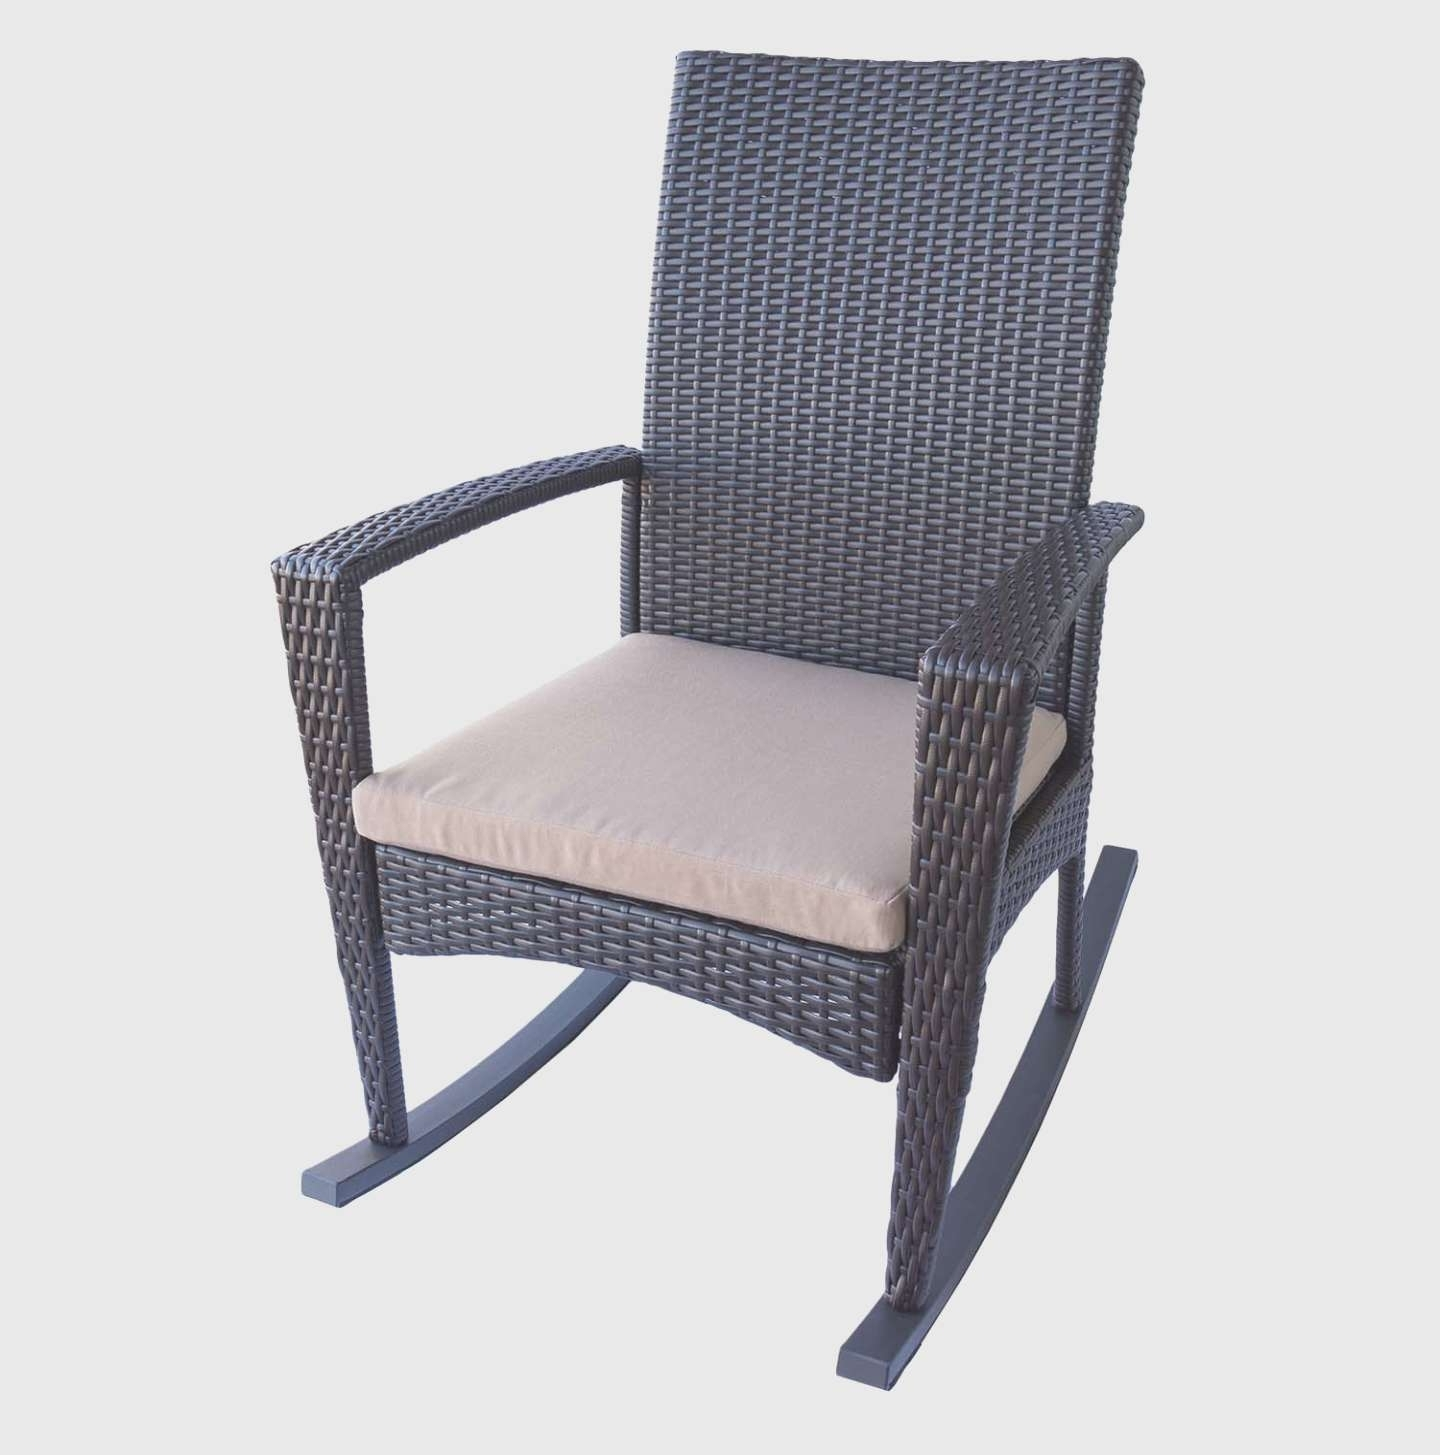 Trendy Chairs At Target – Home Ideas Inside Rocking Chairs At Target (View 12 of 20)